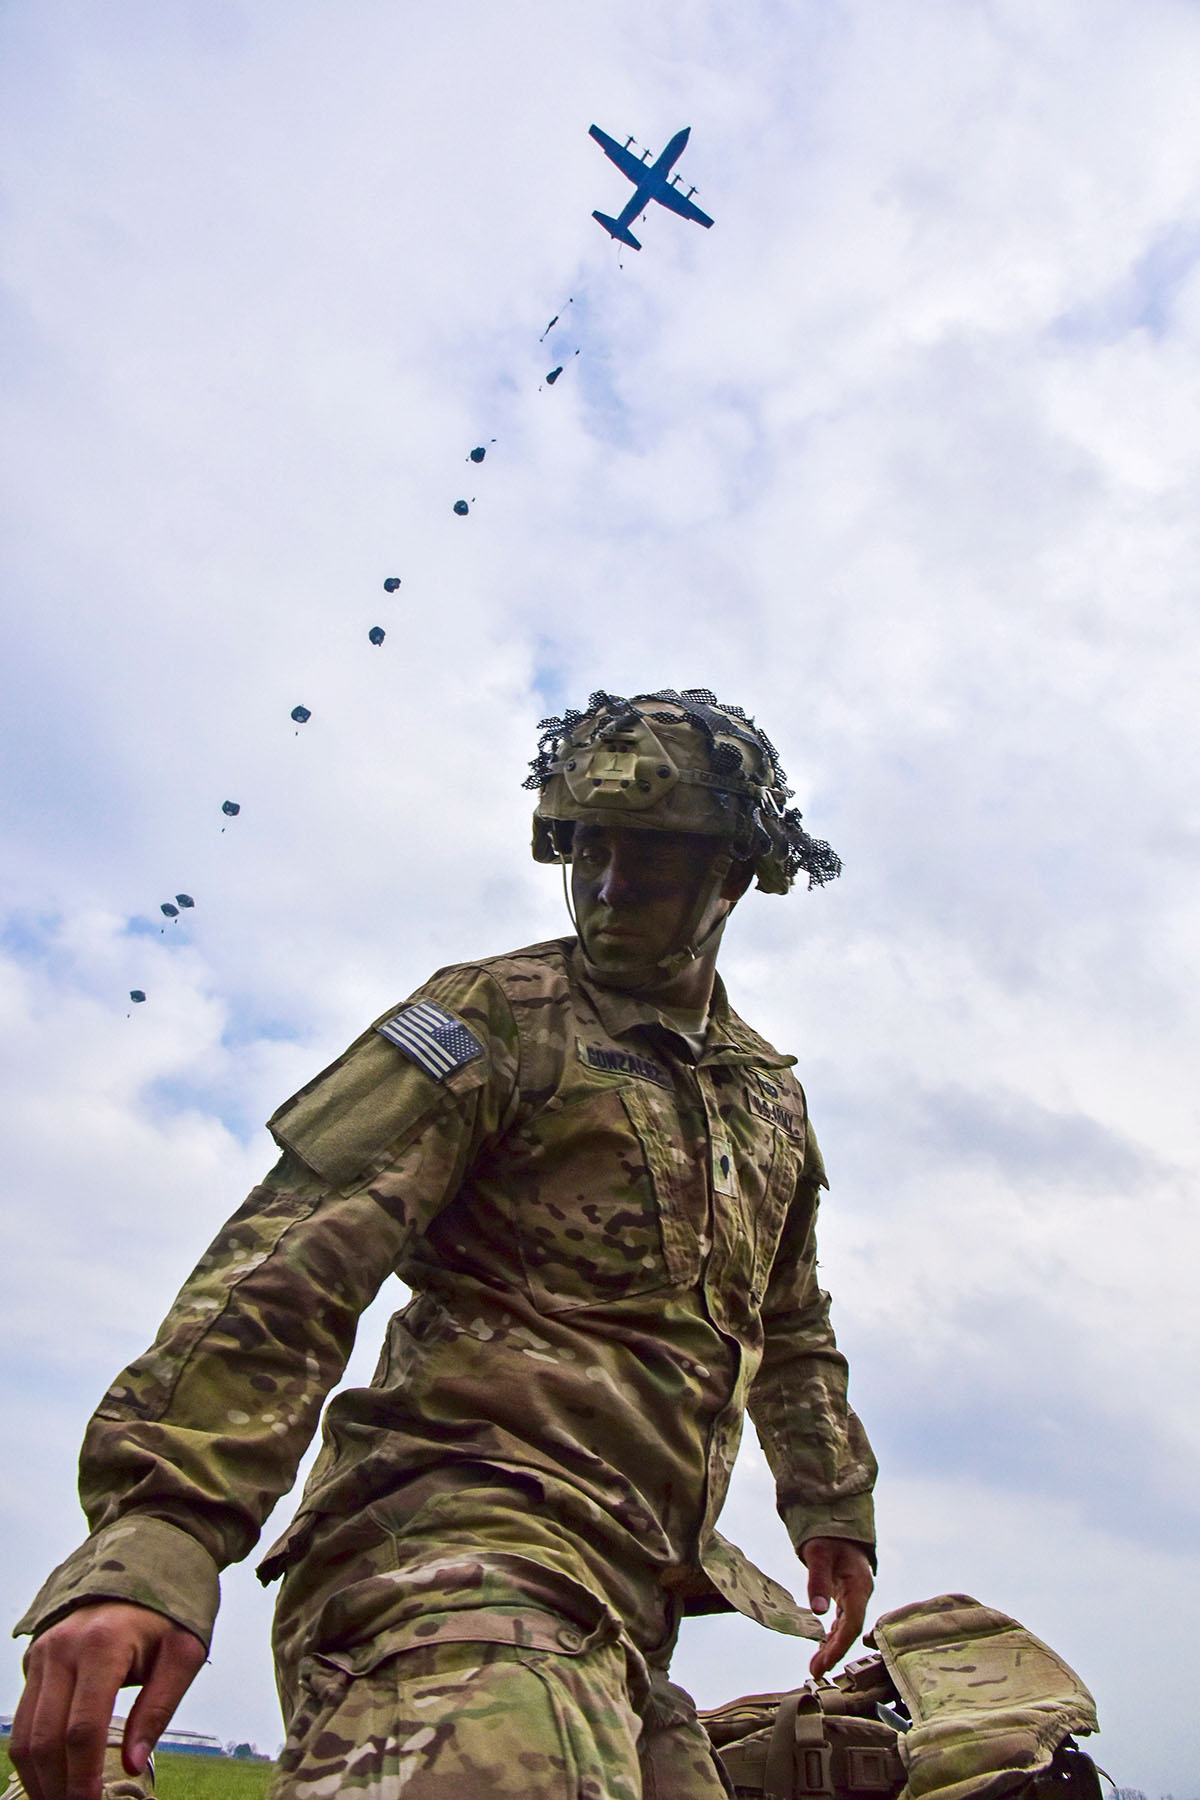 A U.S. Army Paratroopers assigned to the 2nd Battalion, 503rd Infantry Regiment, 173rd Airborne Brigade, secures his equipment after an airborne operation from a U.S. Air Force C-130 Hercules aircraft at Juliet Drop Zone in Pordenone, Italy April 10, 2018. The 173rd Airborne Brigade is the U.S. Army Contingency Response Force in Europe, capable of projecting ready forces anywhere in the U.S. European, Africa or Central Commands' areas of responsibility. (Paolo Bovo/Army)